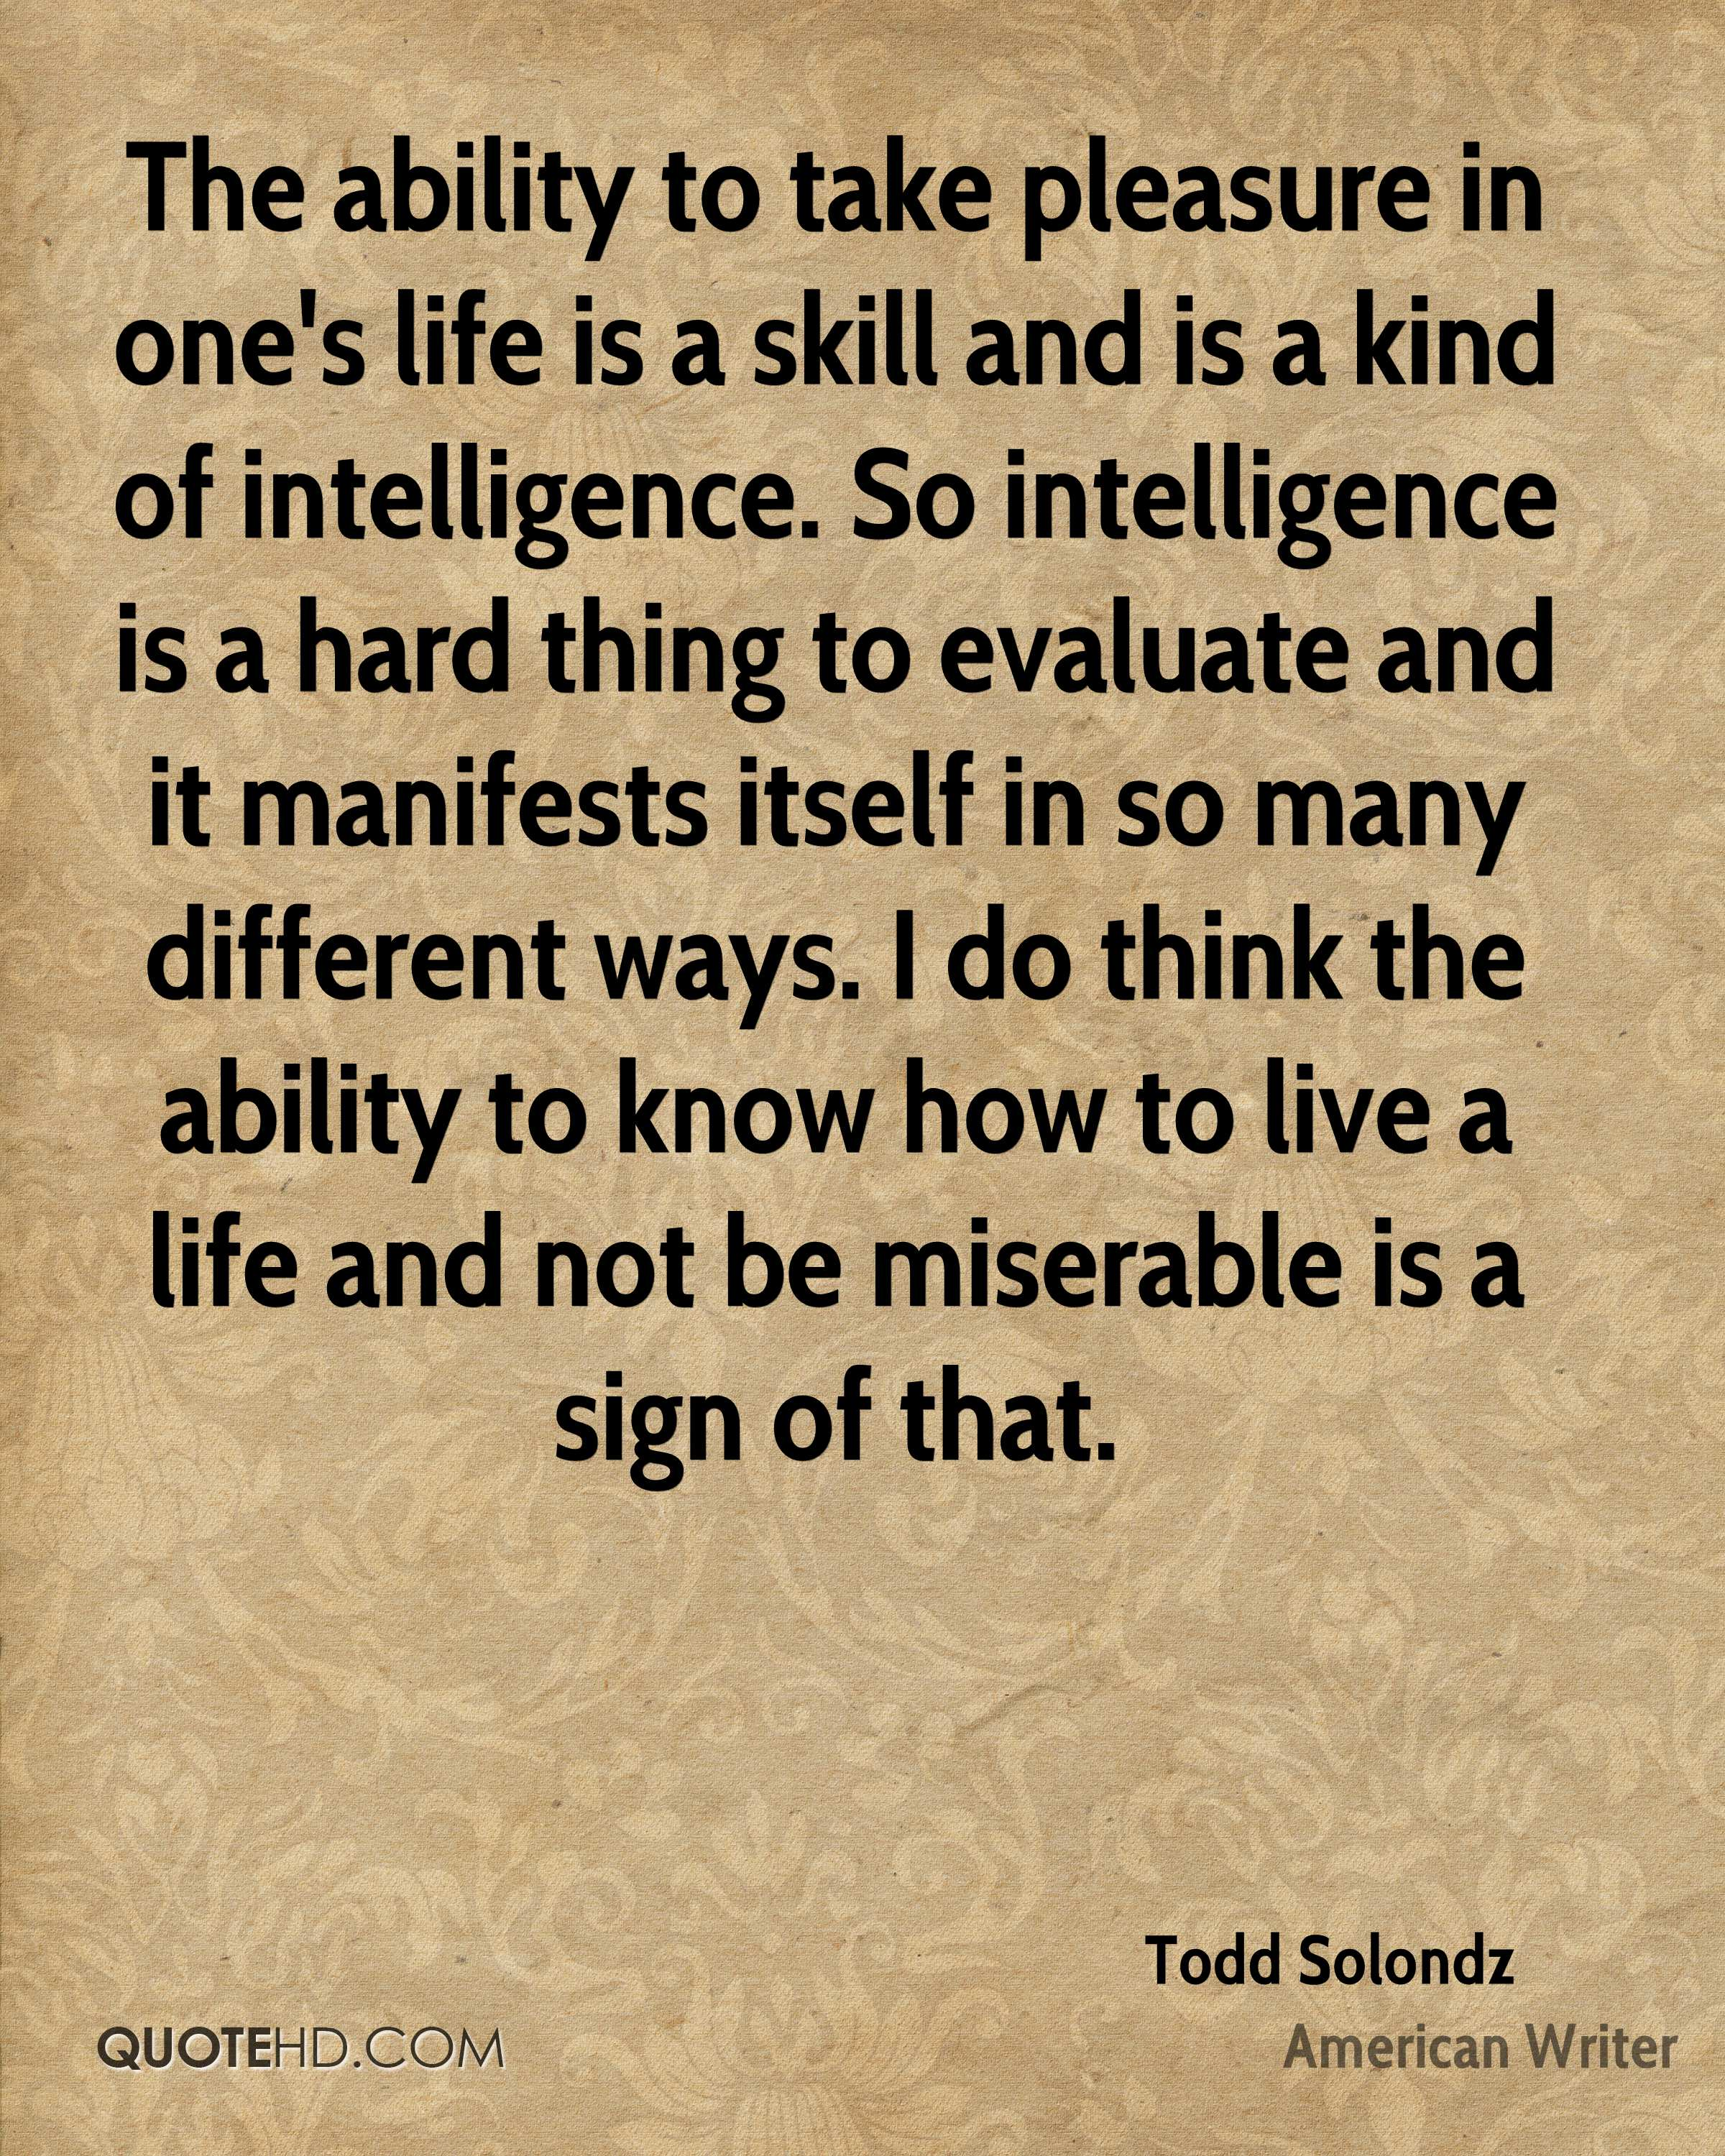 The ability to take pleasure in one's life is a skill and is a kind of intelligence. So intelligence is a hard thing to evaluate and it manifests itself in so many different ways. I do think the ability to know how to live a life and not be miserable is a sign of that.